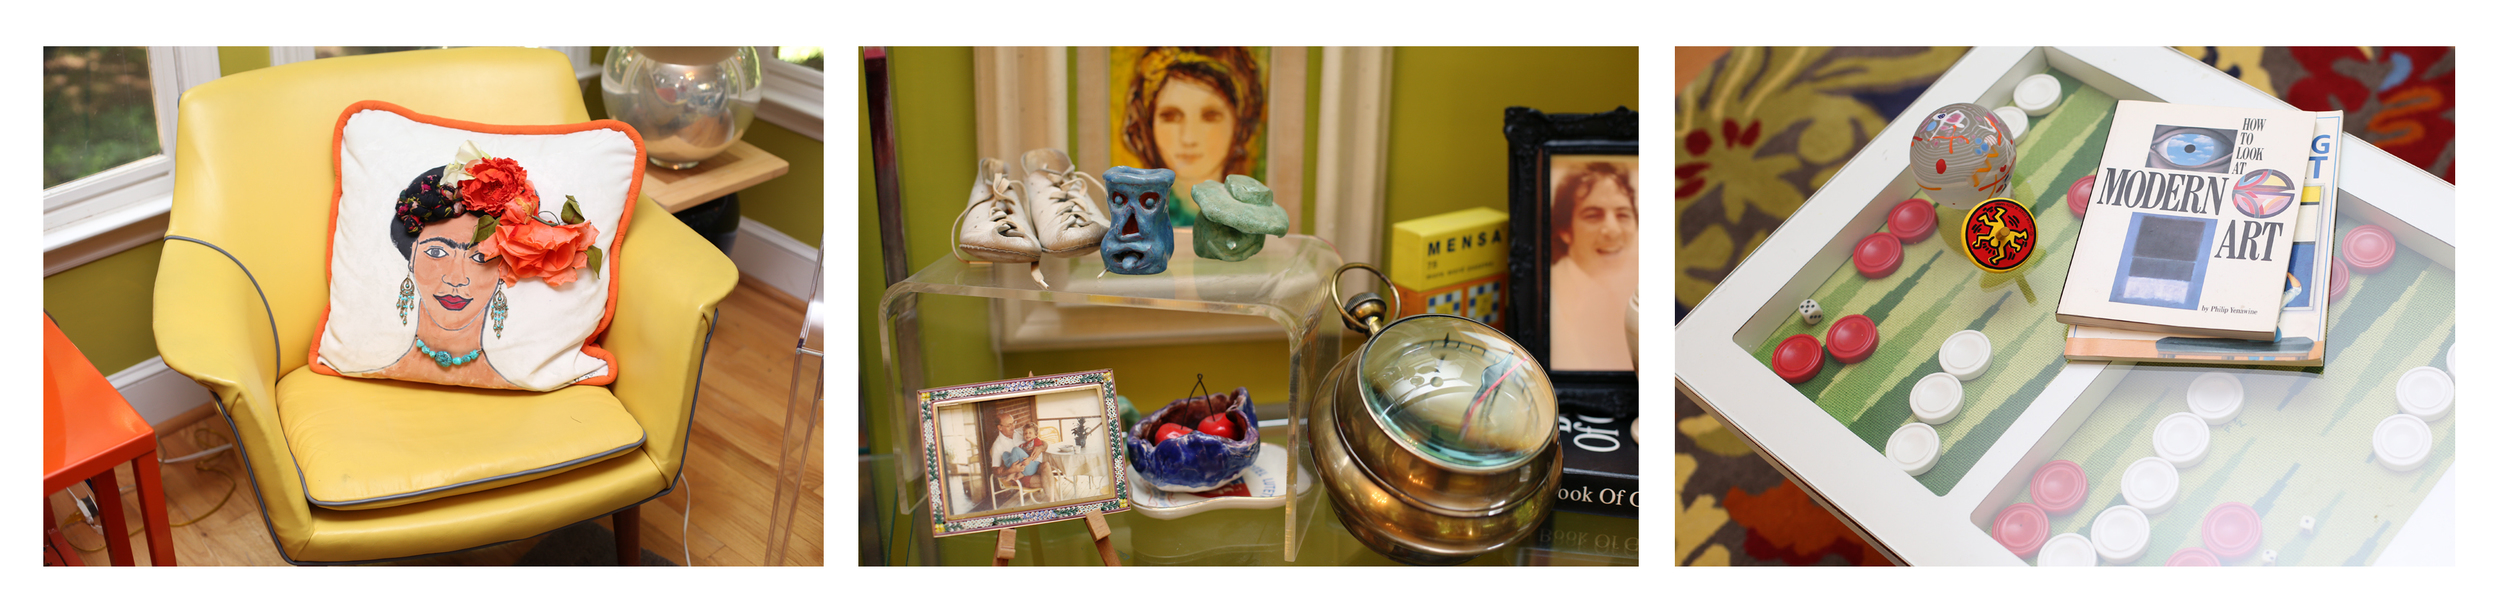 an homage to Frida, sculptures she made as a child & art books are everywhere!